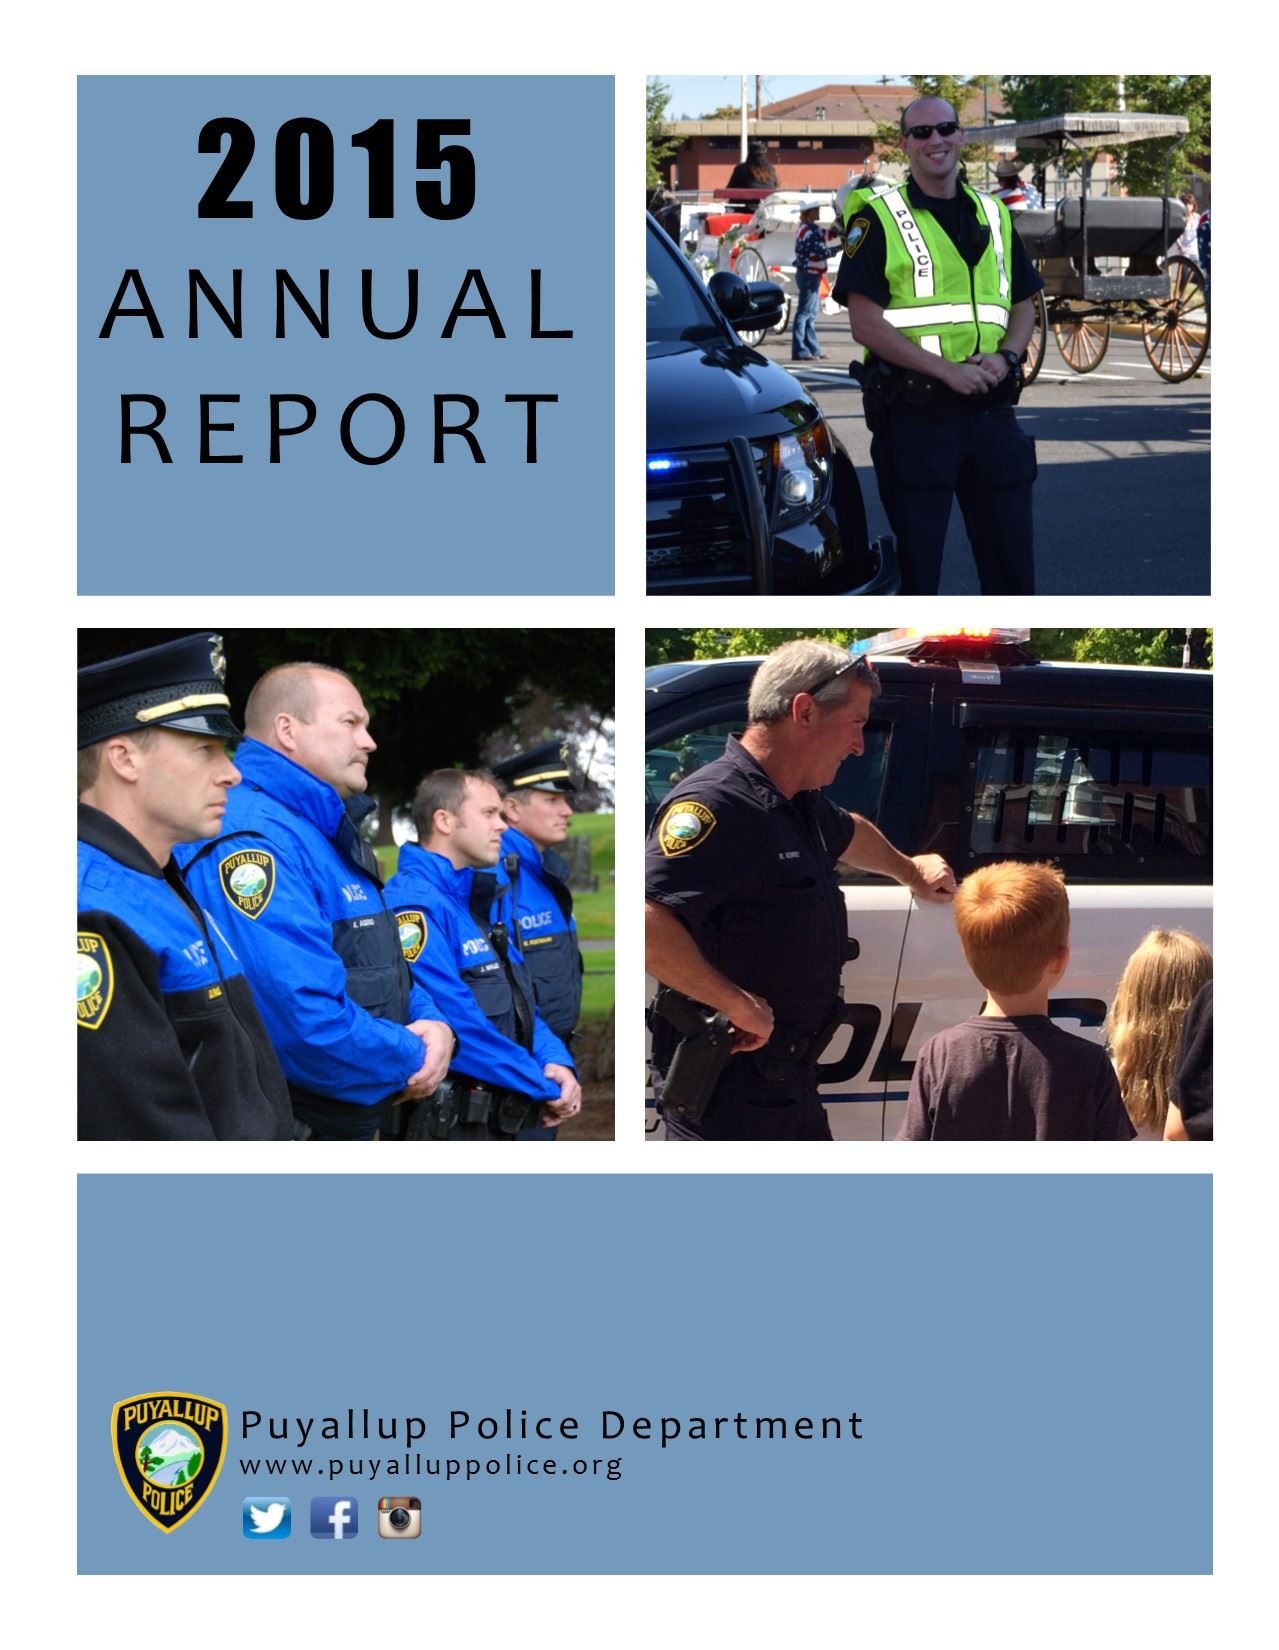 2015 Annual Report Final cover image